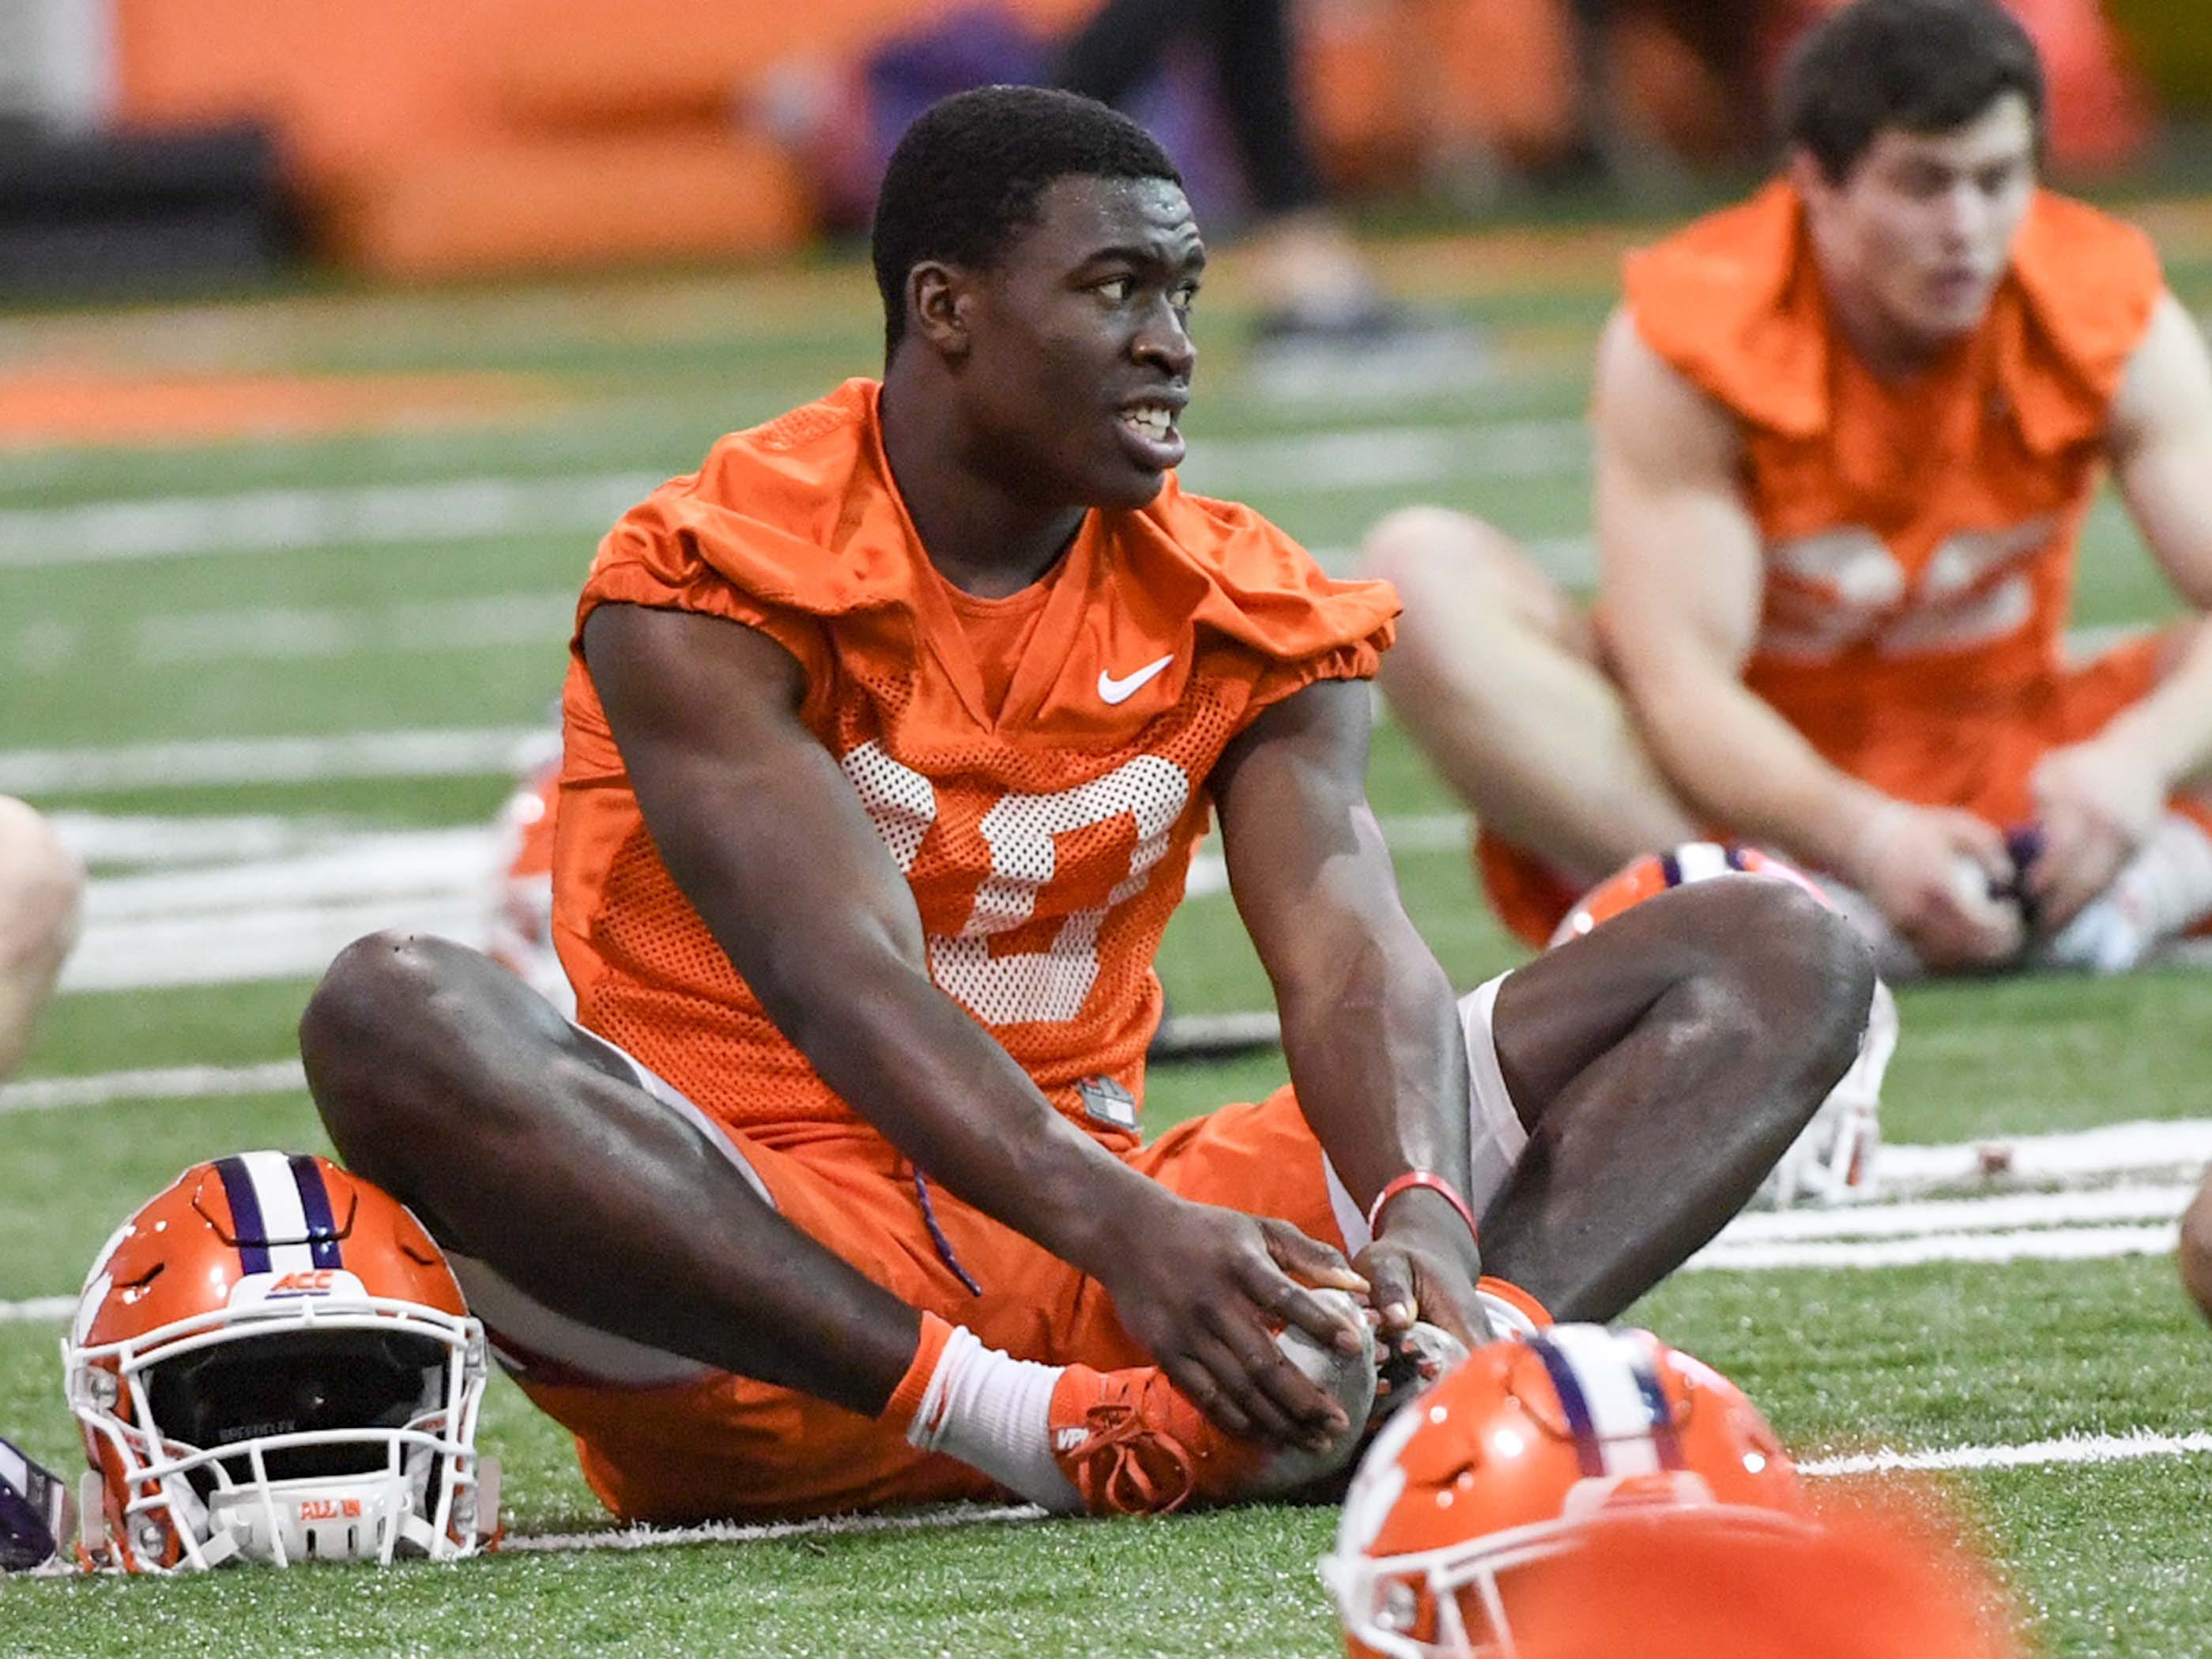 Clemson wide receiver Joseph Ngata (10) stretches during practice at the Poe Indoor Facility in Clemson Friday.